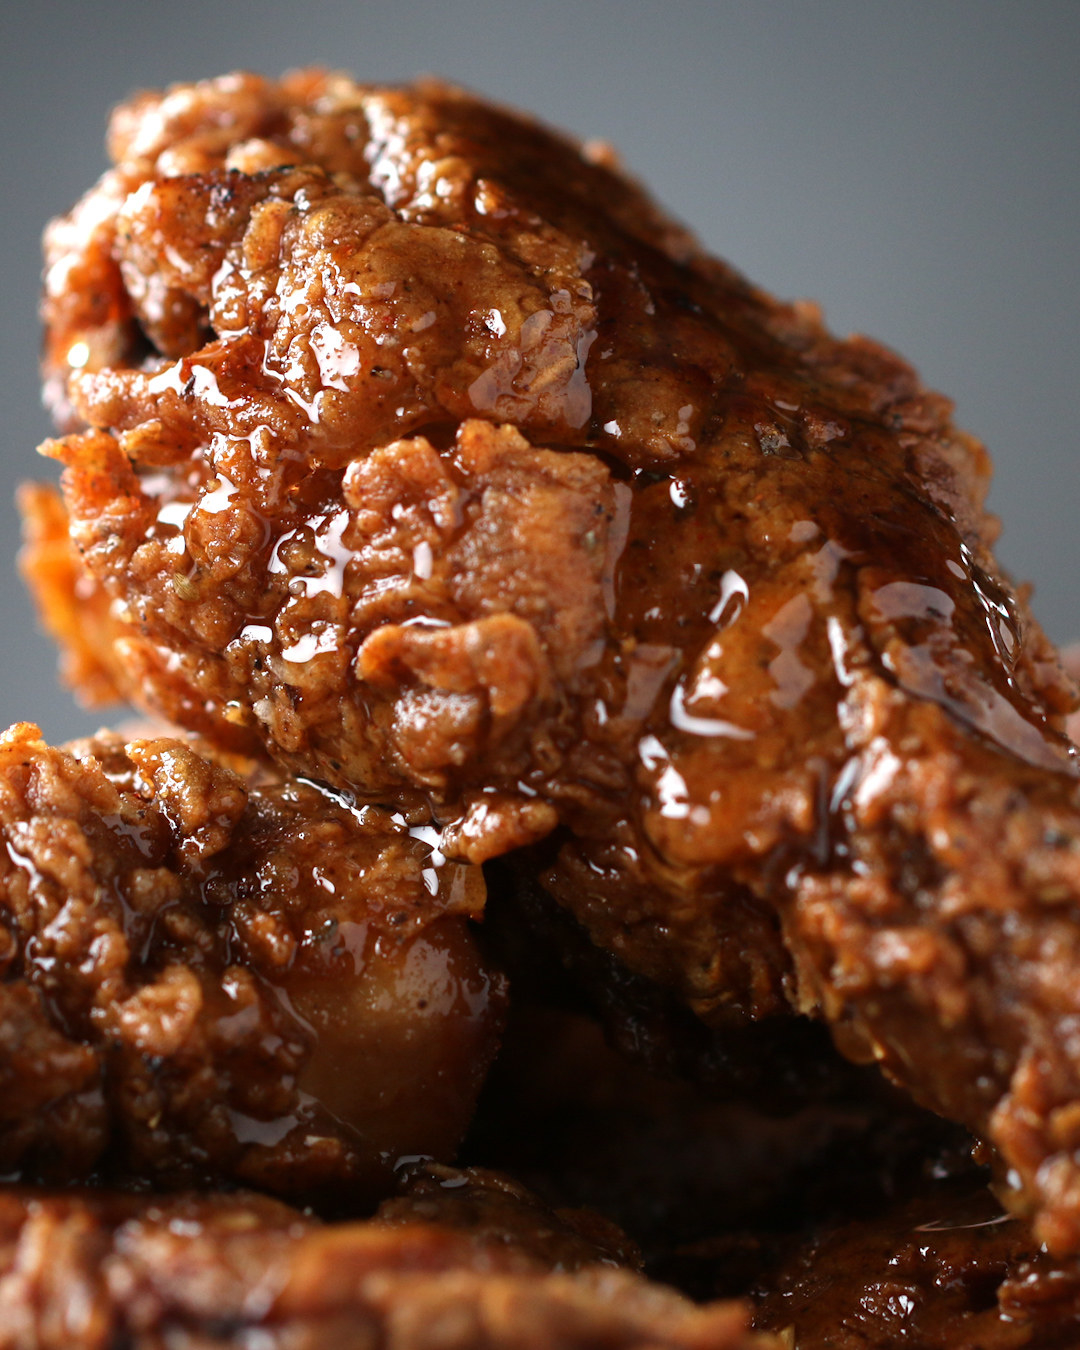 This Honey-Glazed Fried Chicken Is Super Juicy And You Have To Try It Now